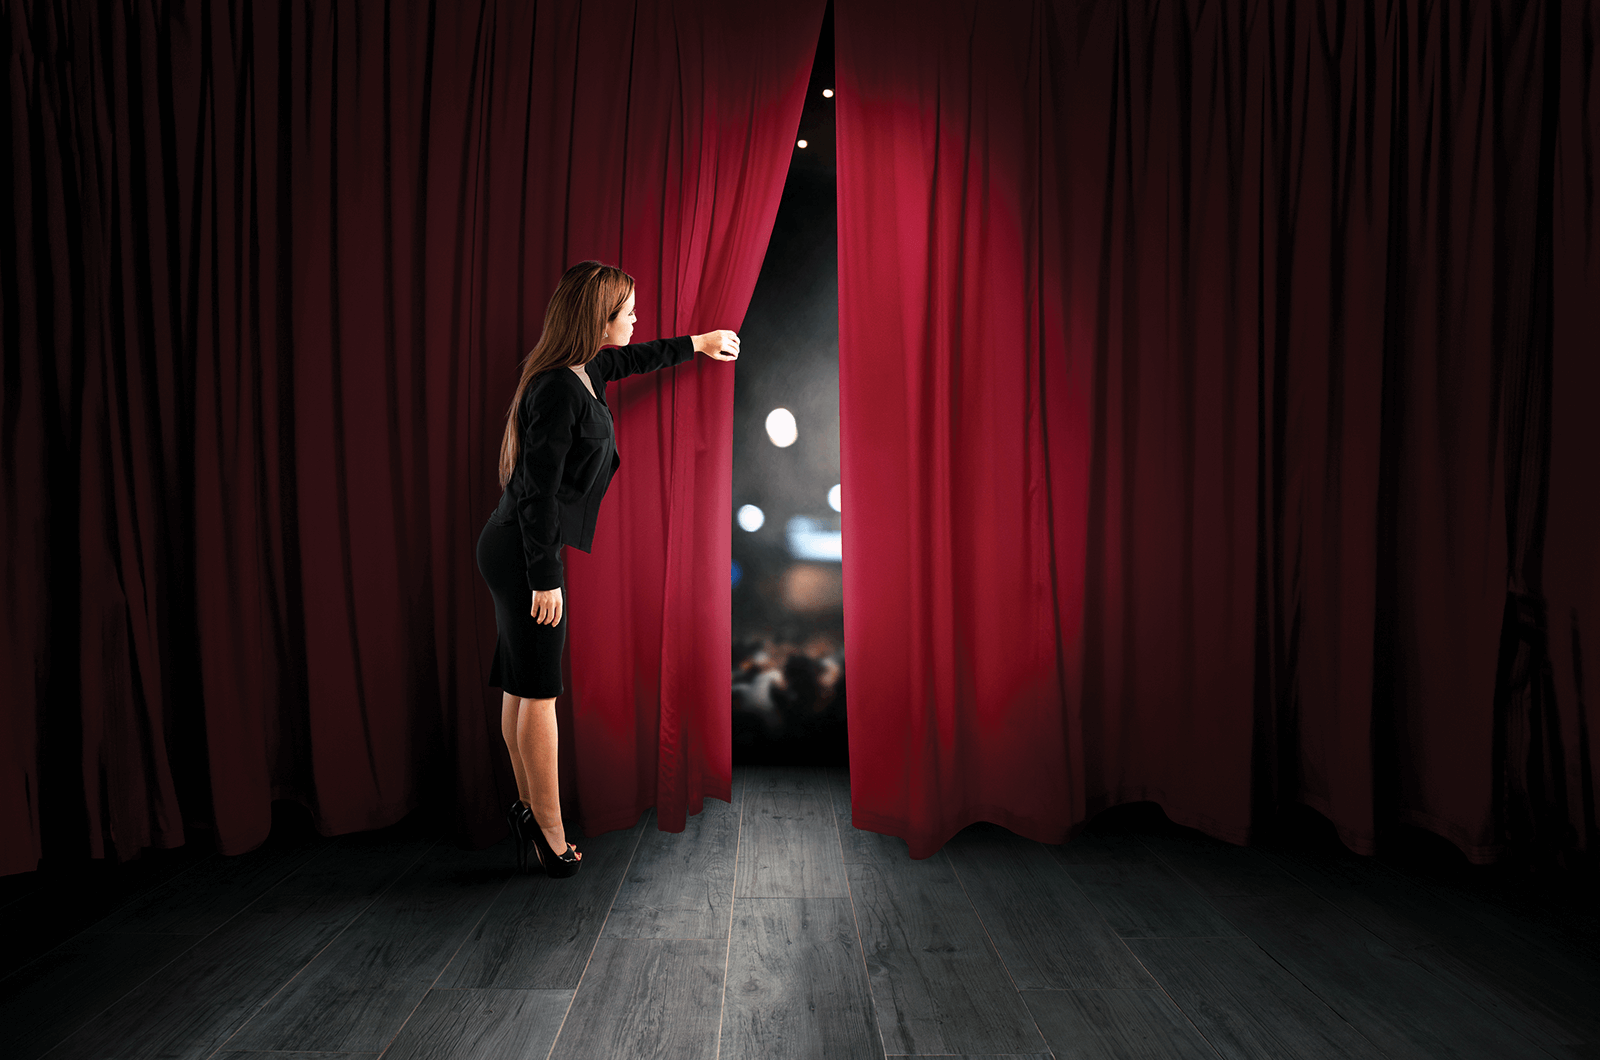 Woman peering from behind stage curtain